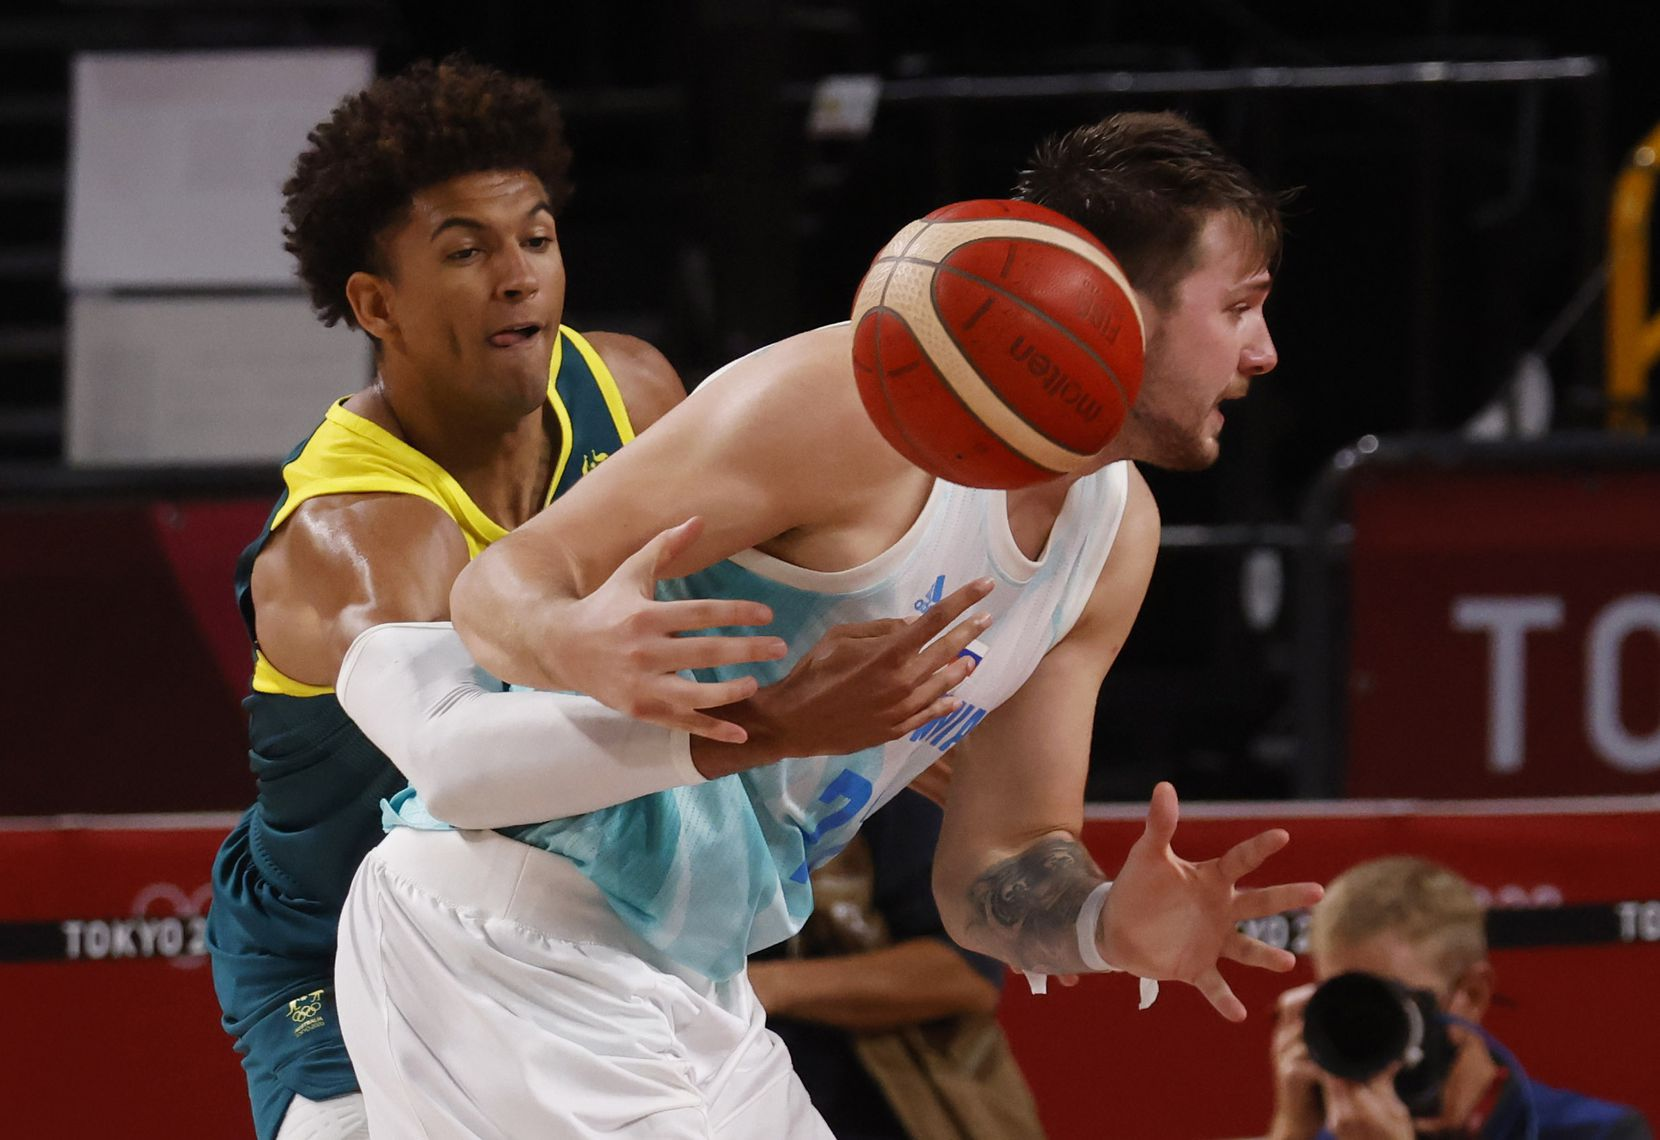 Australia's Matisse Thybulle (10) knocks the ball out of the hands of Slovenia's Luka Doncic (77) during the fourth quarter of play in the bronze medal basketball game at the postponed 2020 Tokyo Olympics at Saitama Super Arena, on Saturday, August 7, 2021, in Saitama, Japan. (Vernon Bryant/The Dallas Morning News)